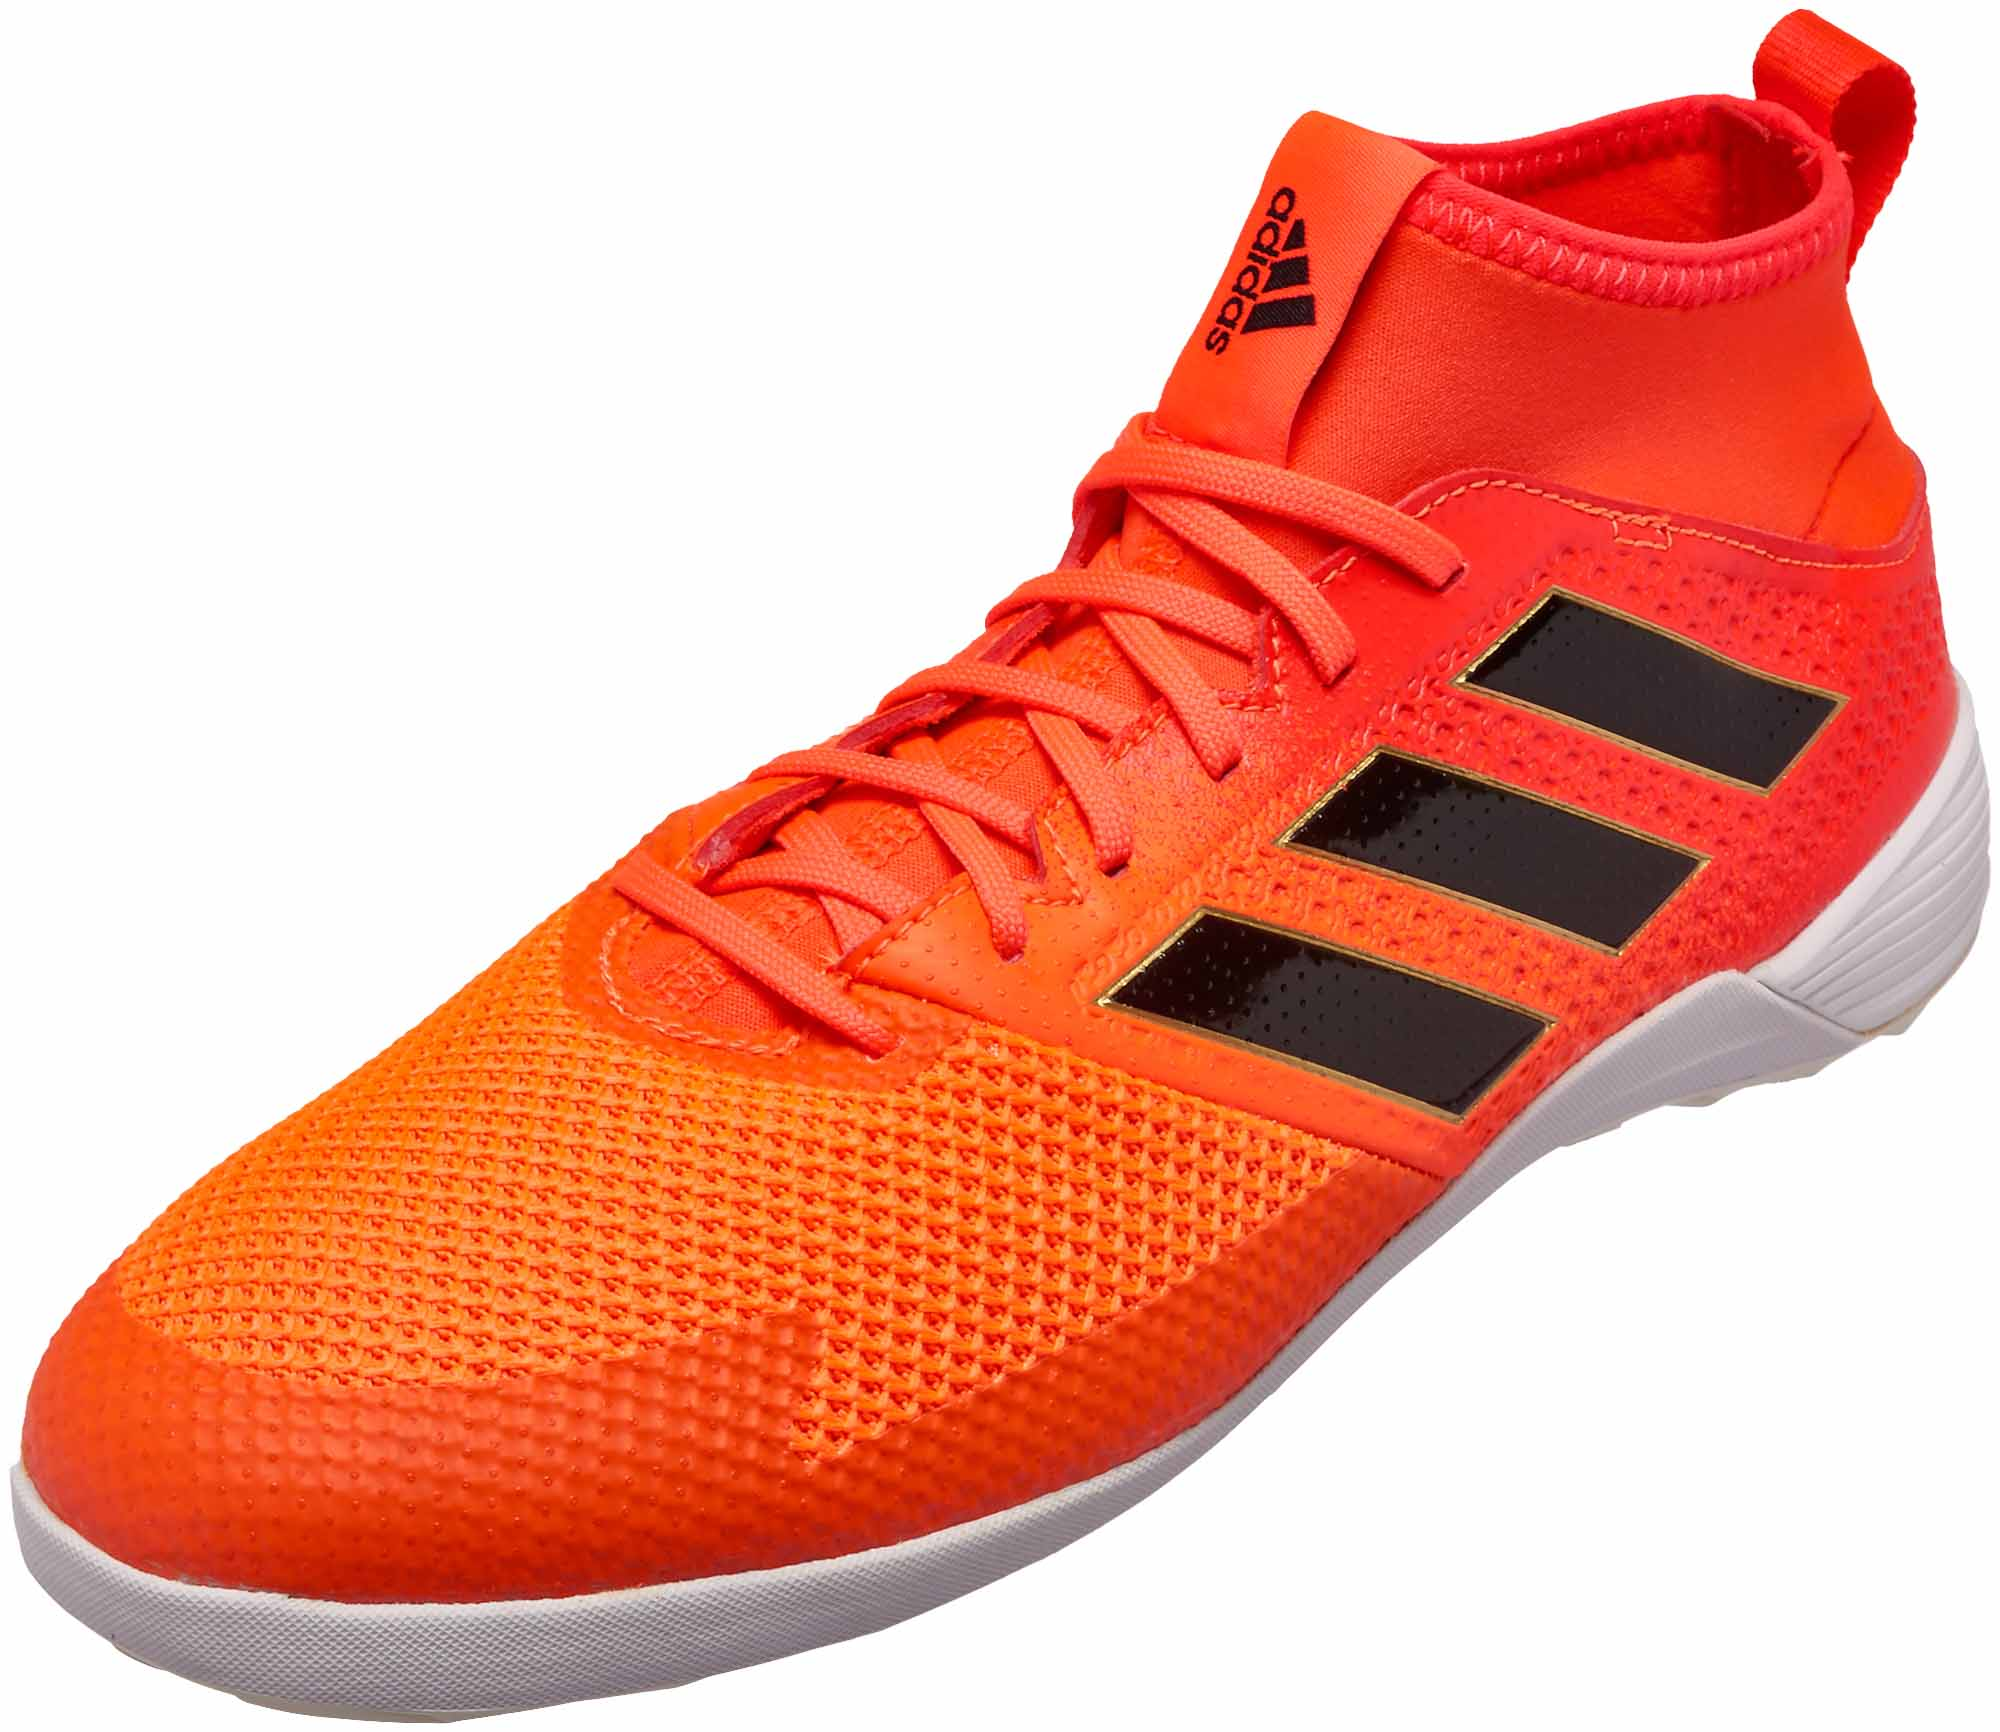 c5a67e51e adidas ACE Tango 17.3 IN - Solar Red   Solar Orange